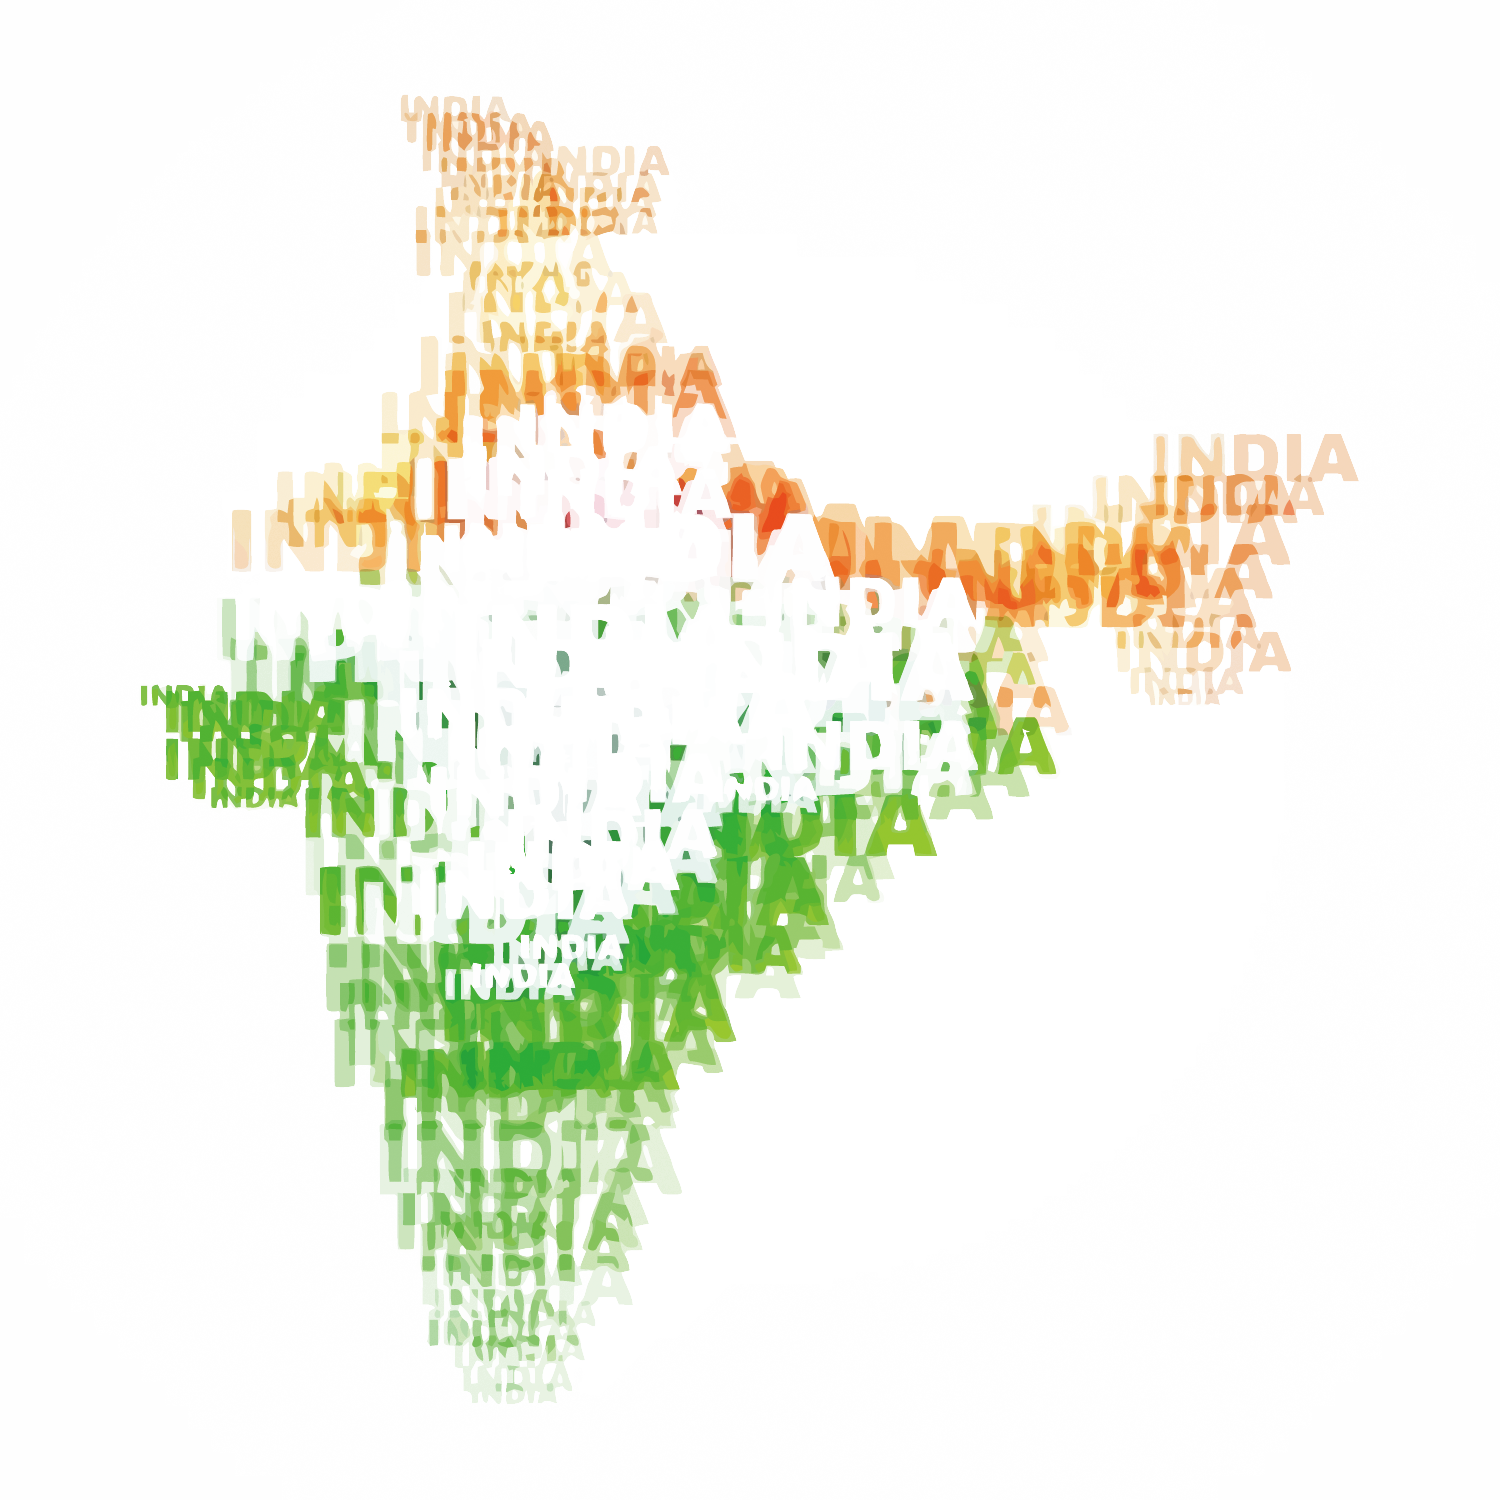 Map India Indian World Day Independence PNG Image